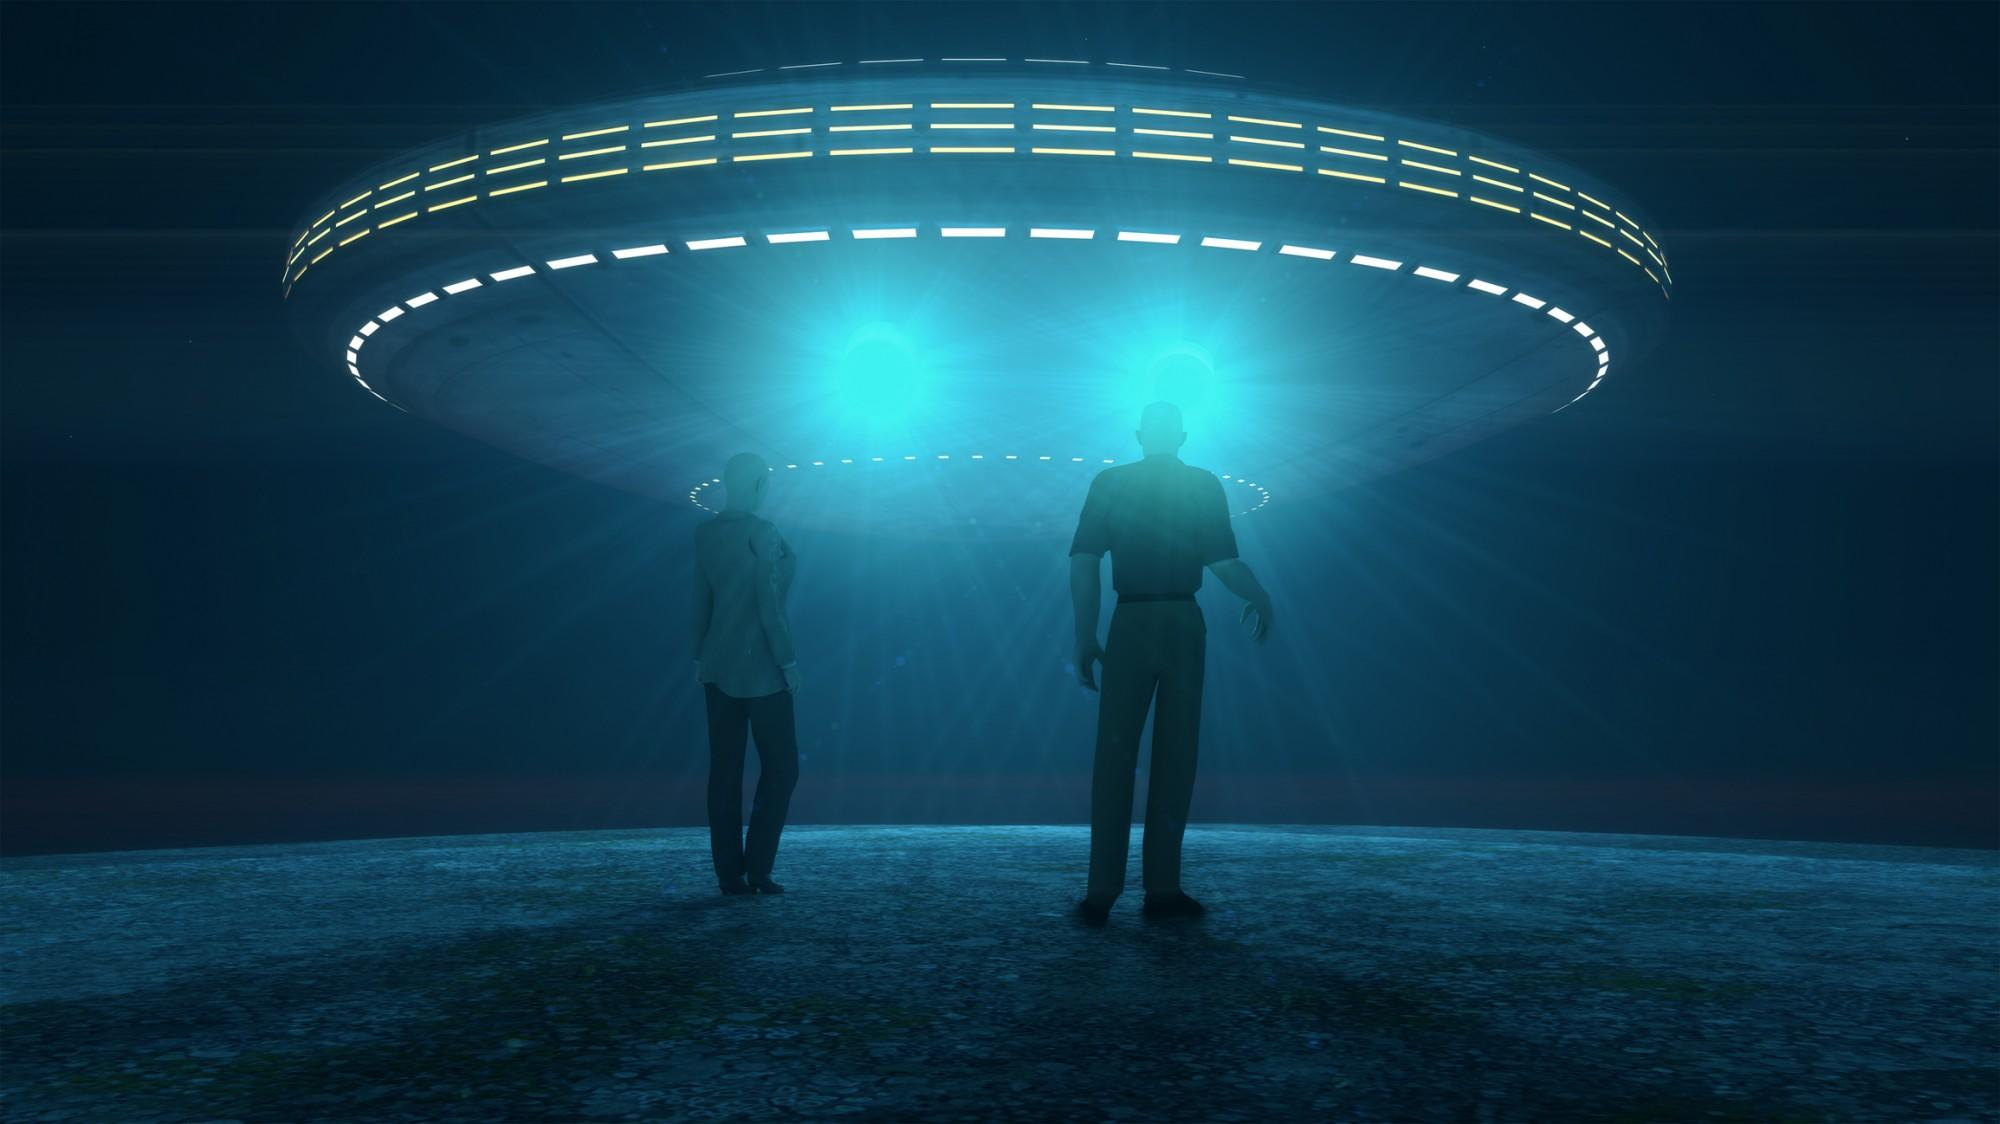 Ufo attacking and abducting